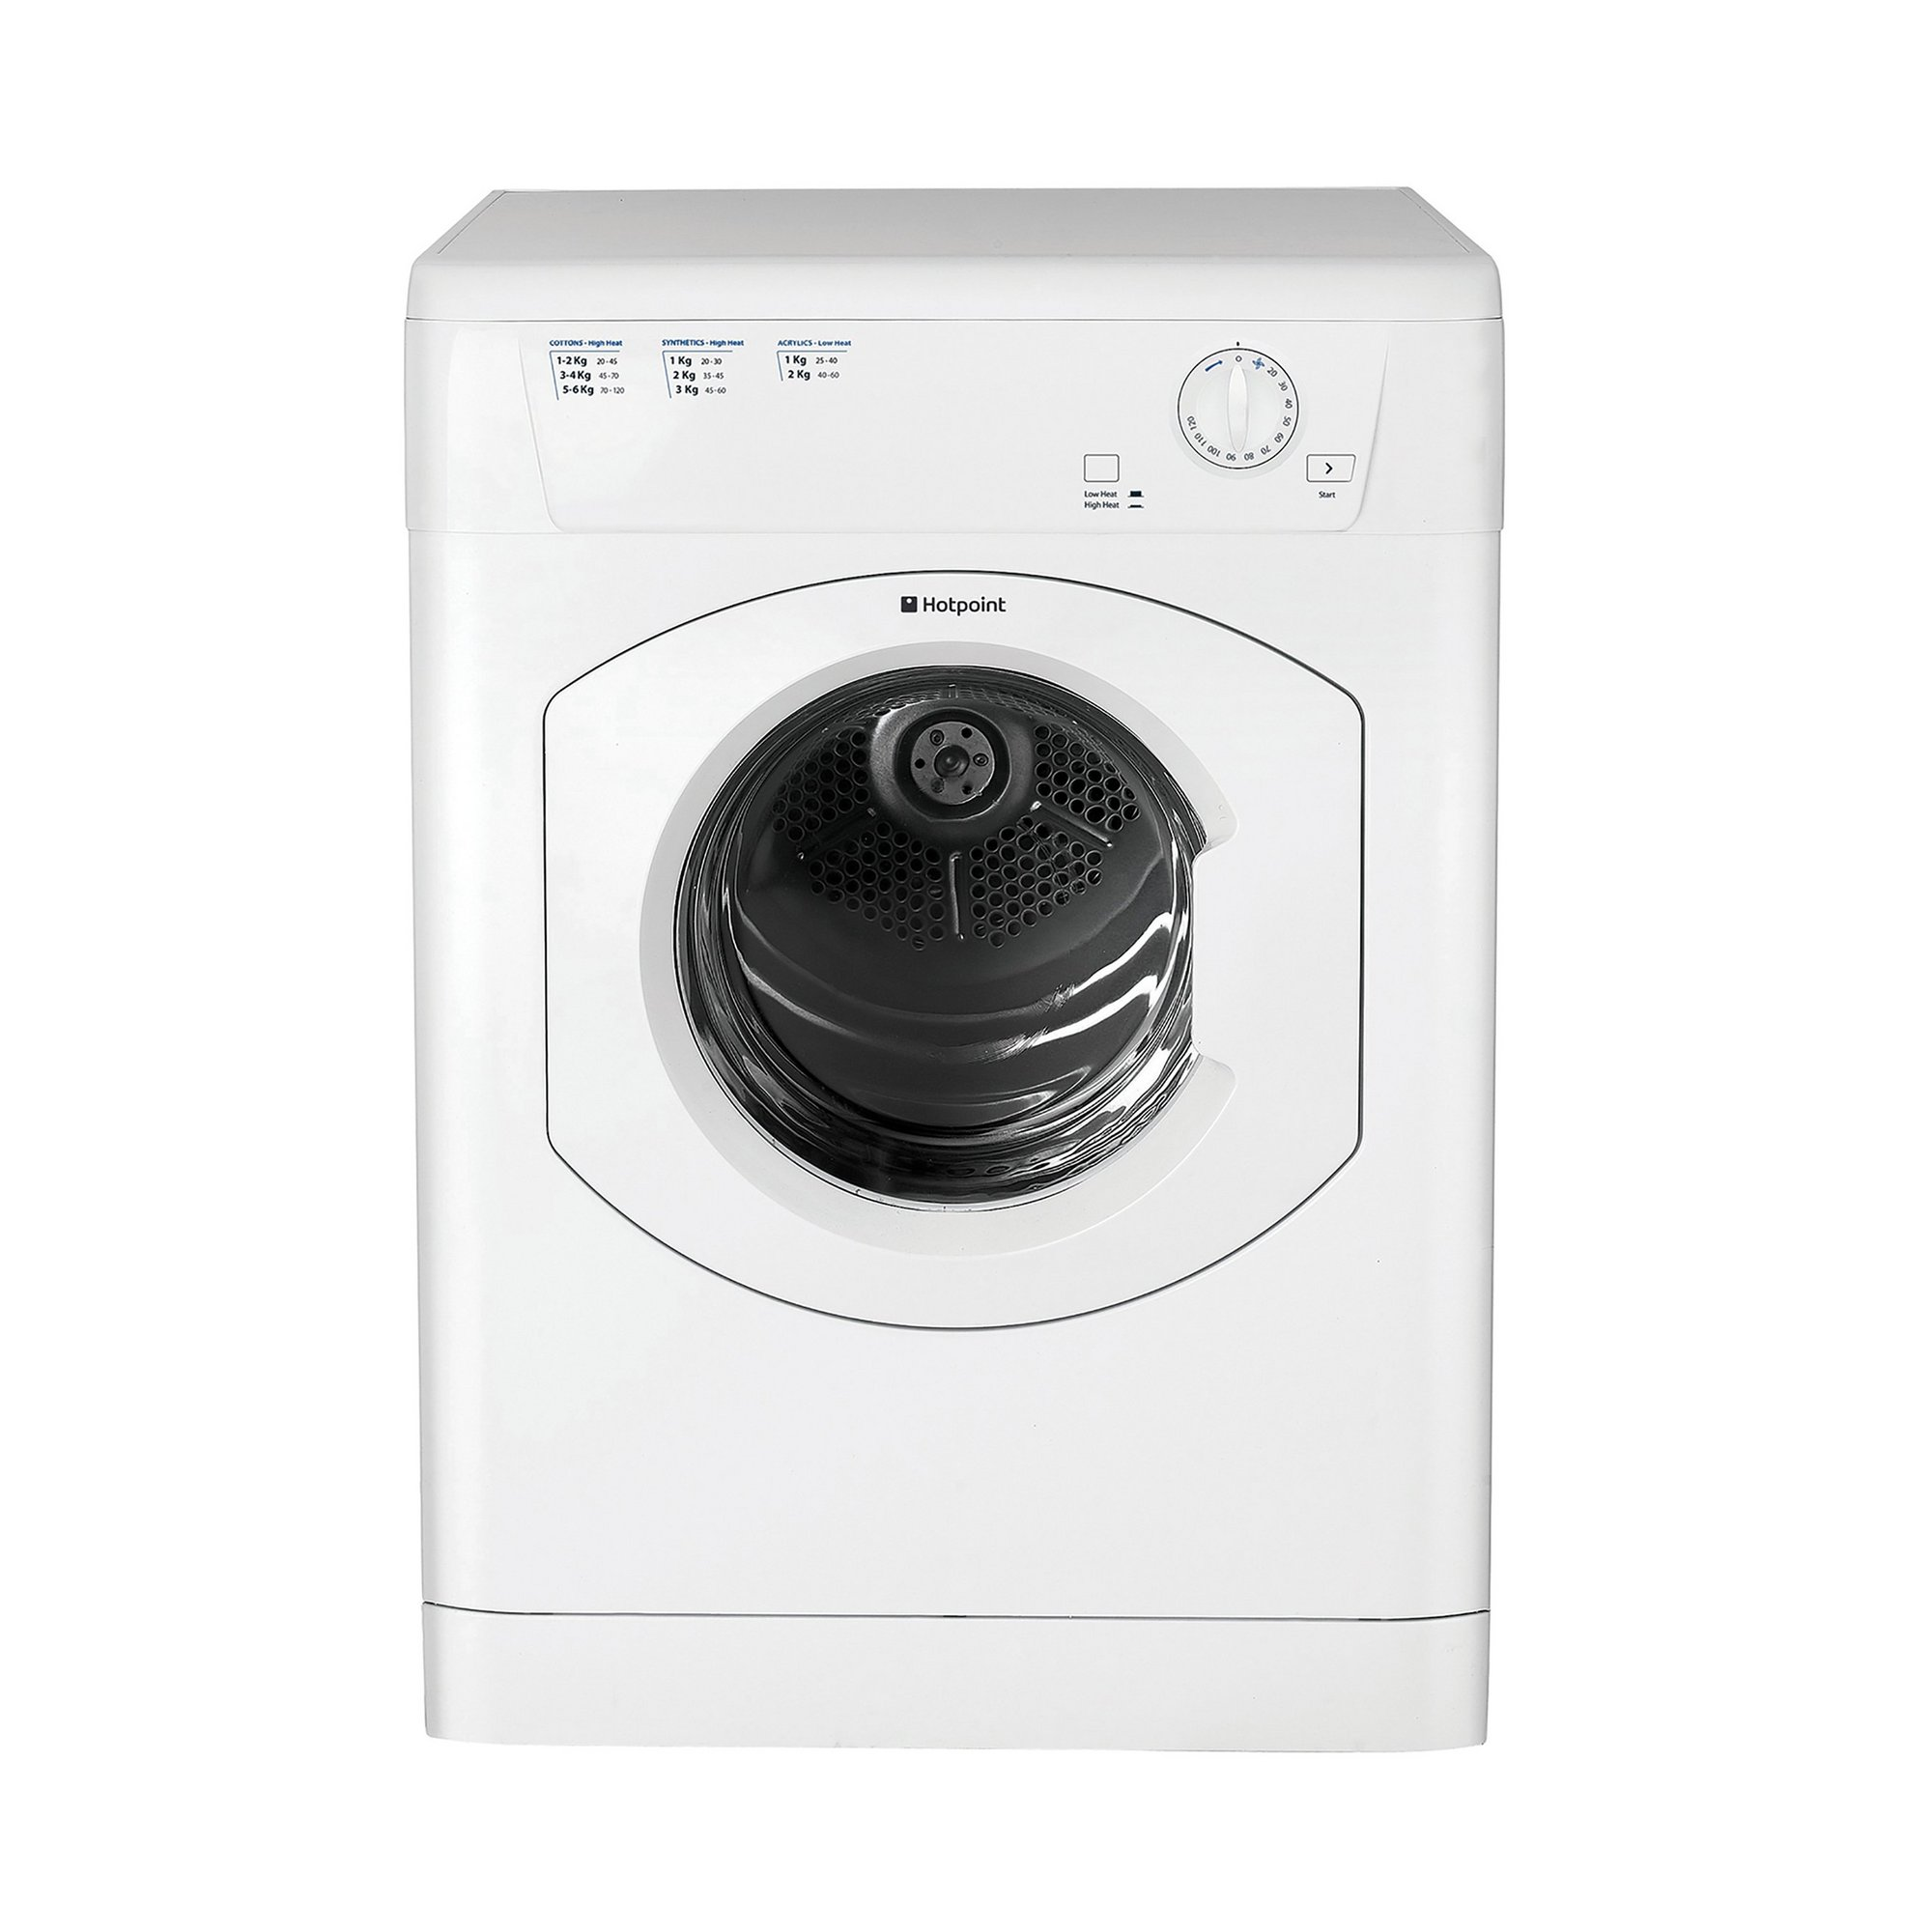 Image of Hotpoint 6kg Vented Tumble Dryer